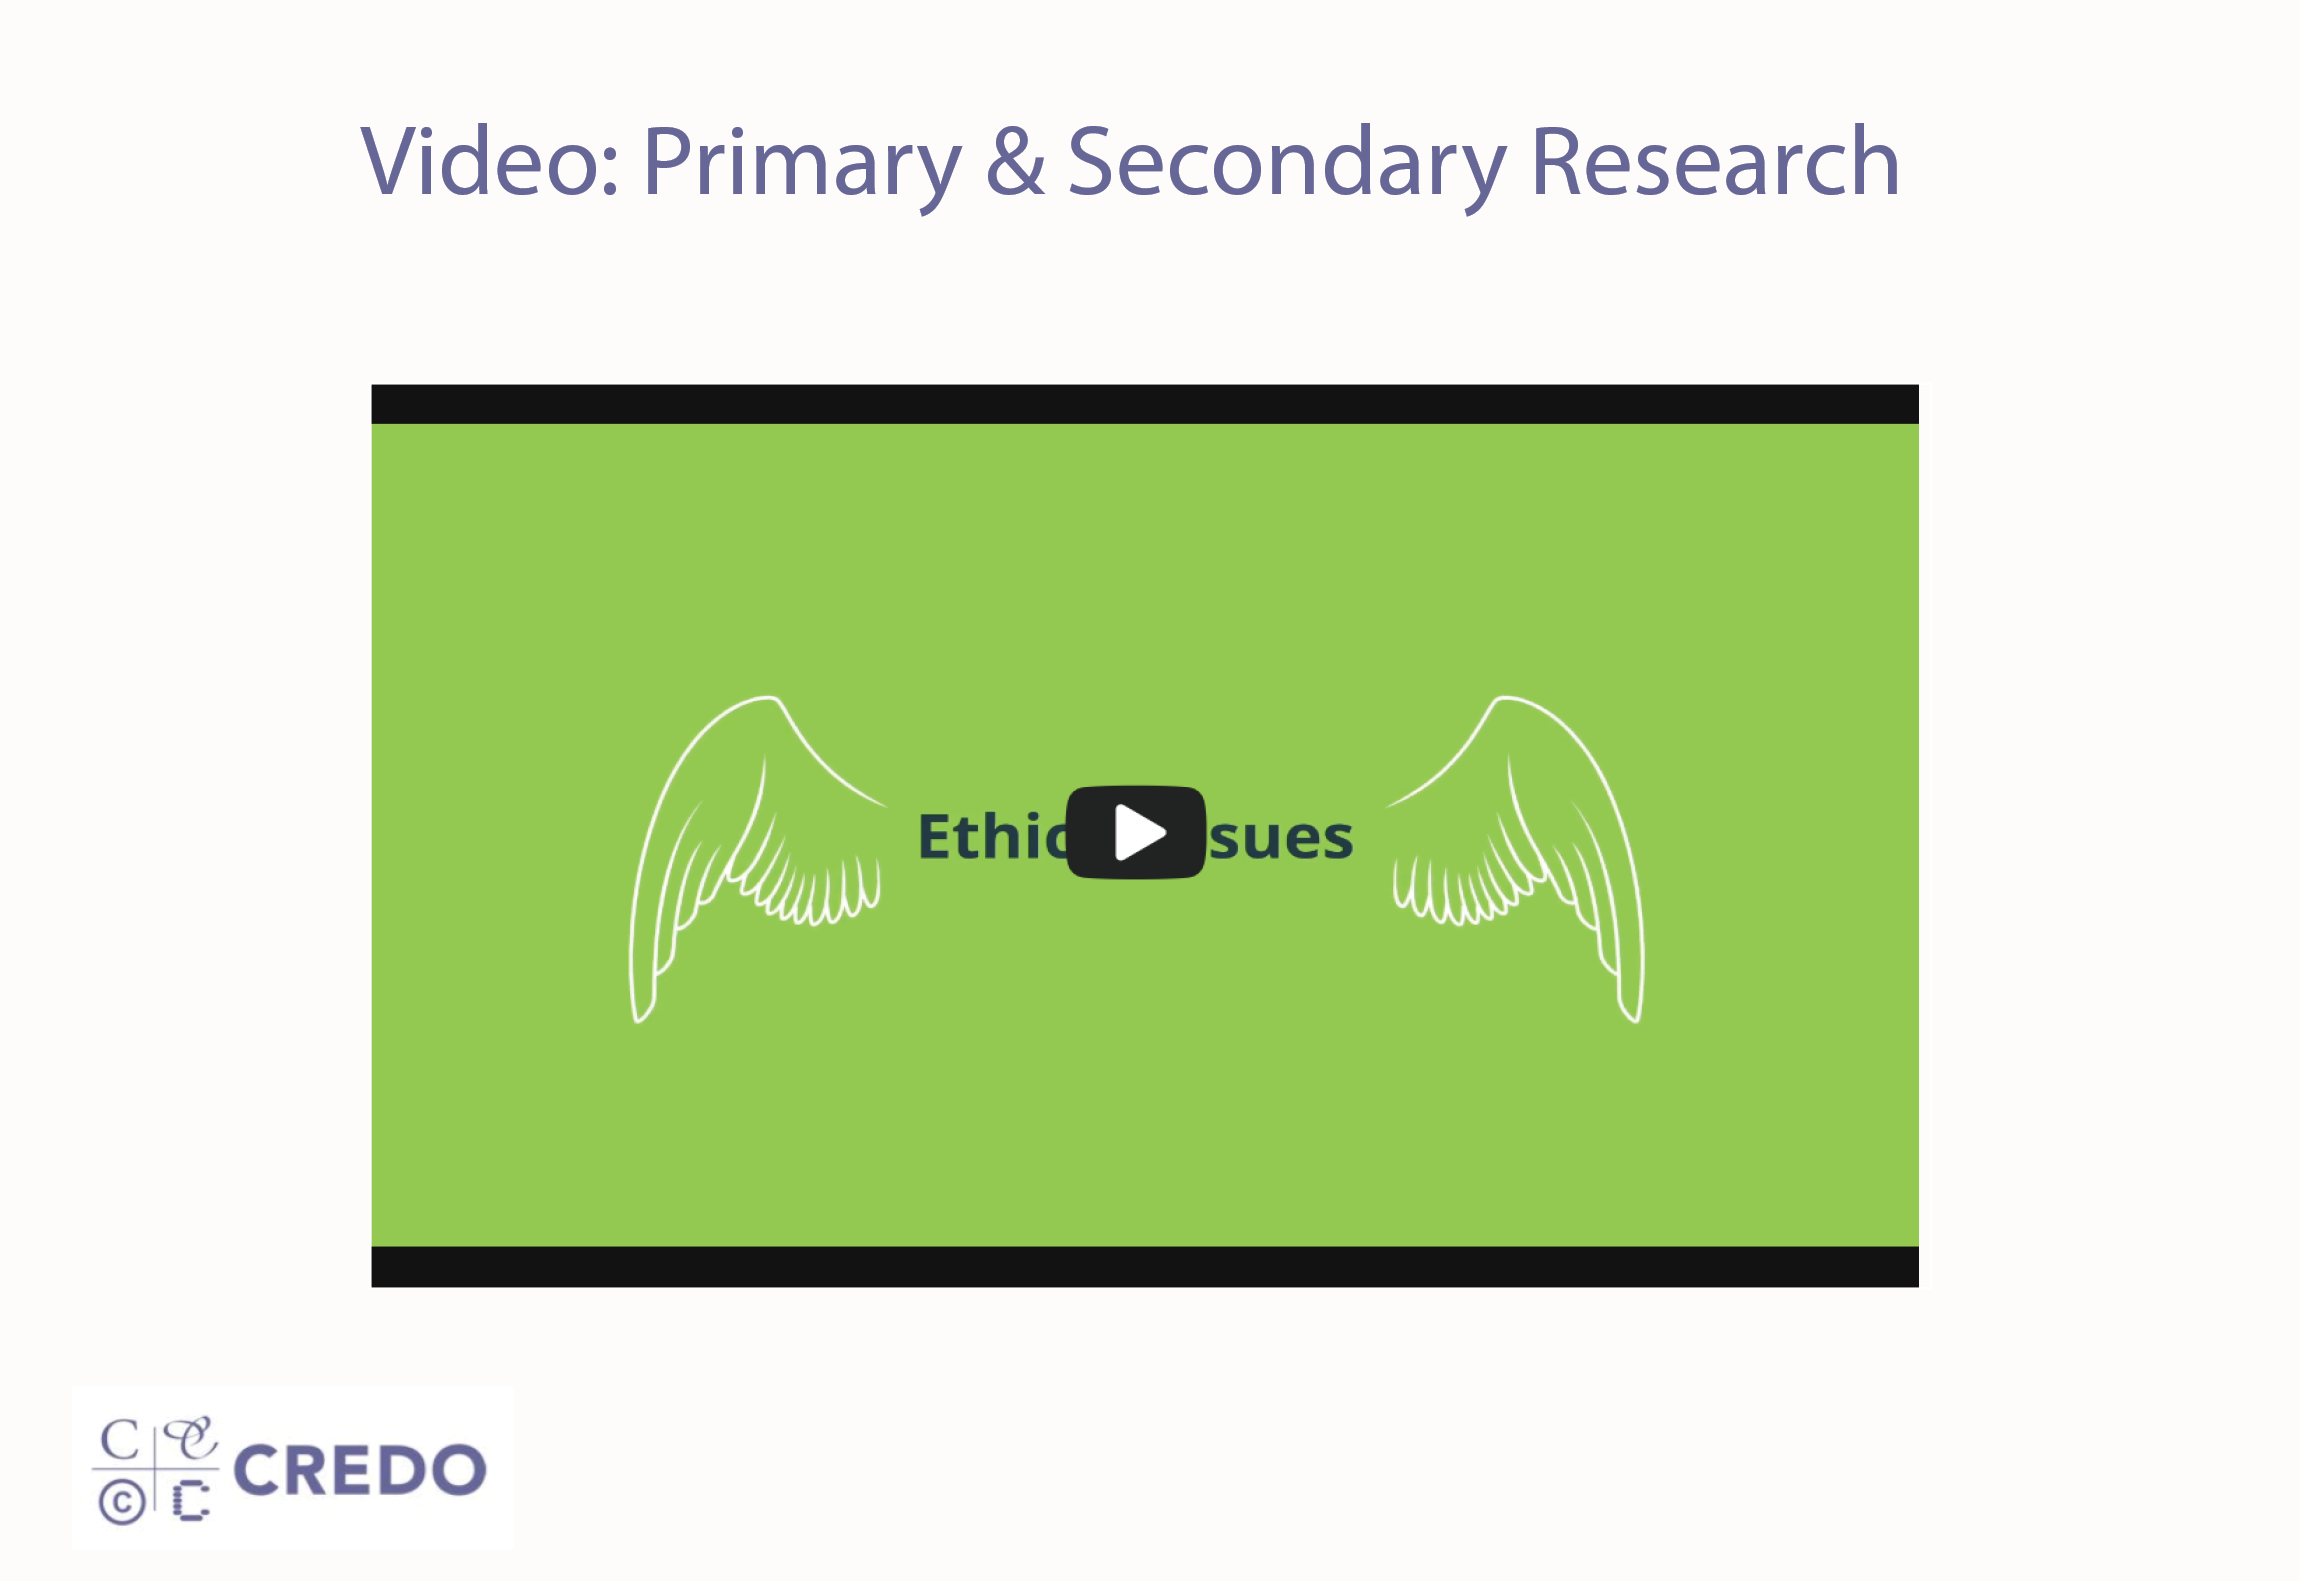 Video: Primary & Secondary Research